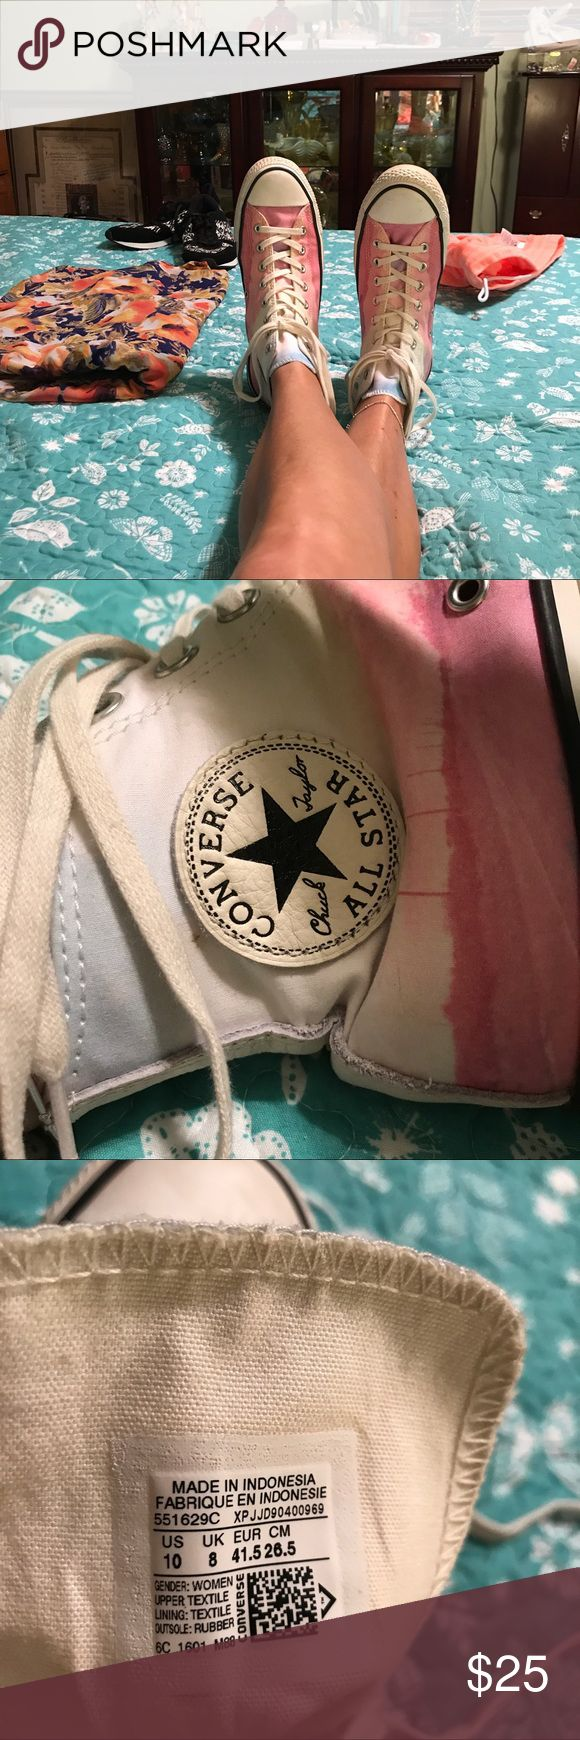 👟 ladies Converse hightop tennis shoes almost new Beautiful rainbow colored had top tennis shoes converse, if you will notice the coloring of the pink there is a highway or road and power poles going down the side of the tennis shoe very unusual excellent condition hardly worn see pictures for more detail I do except offers thanks for looking and happy poshing Converse Shoes Sneakers